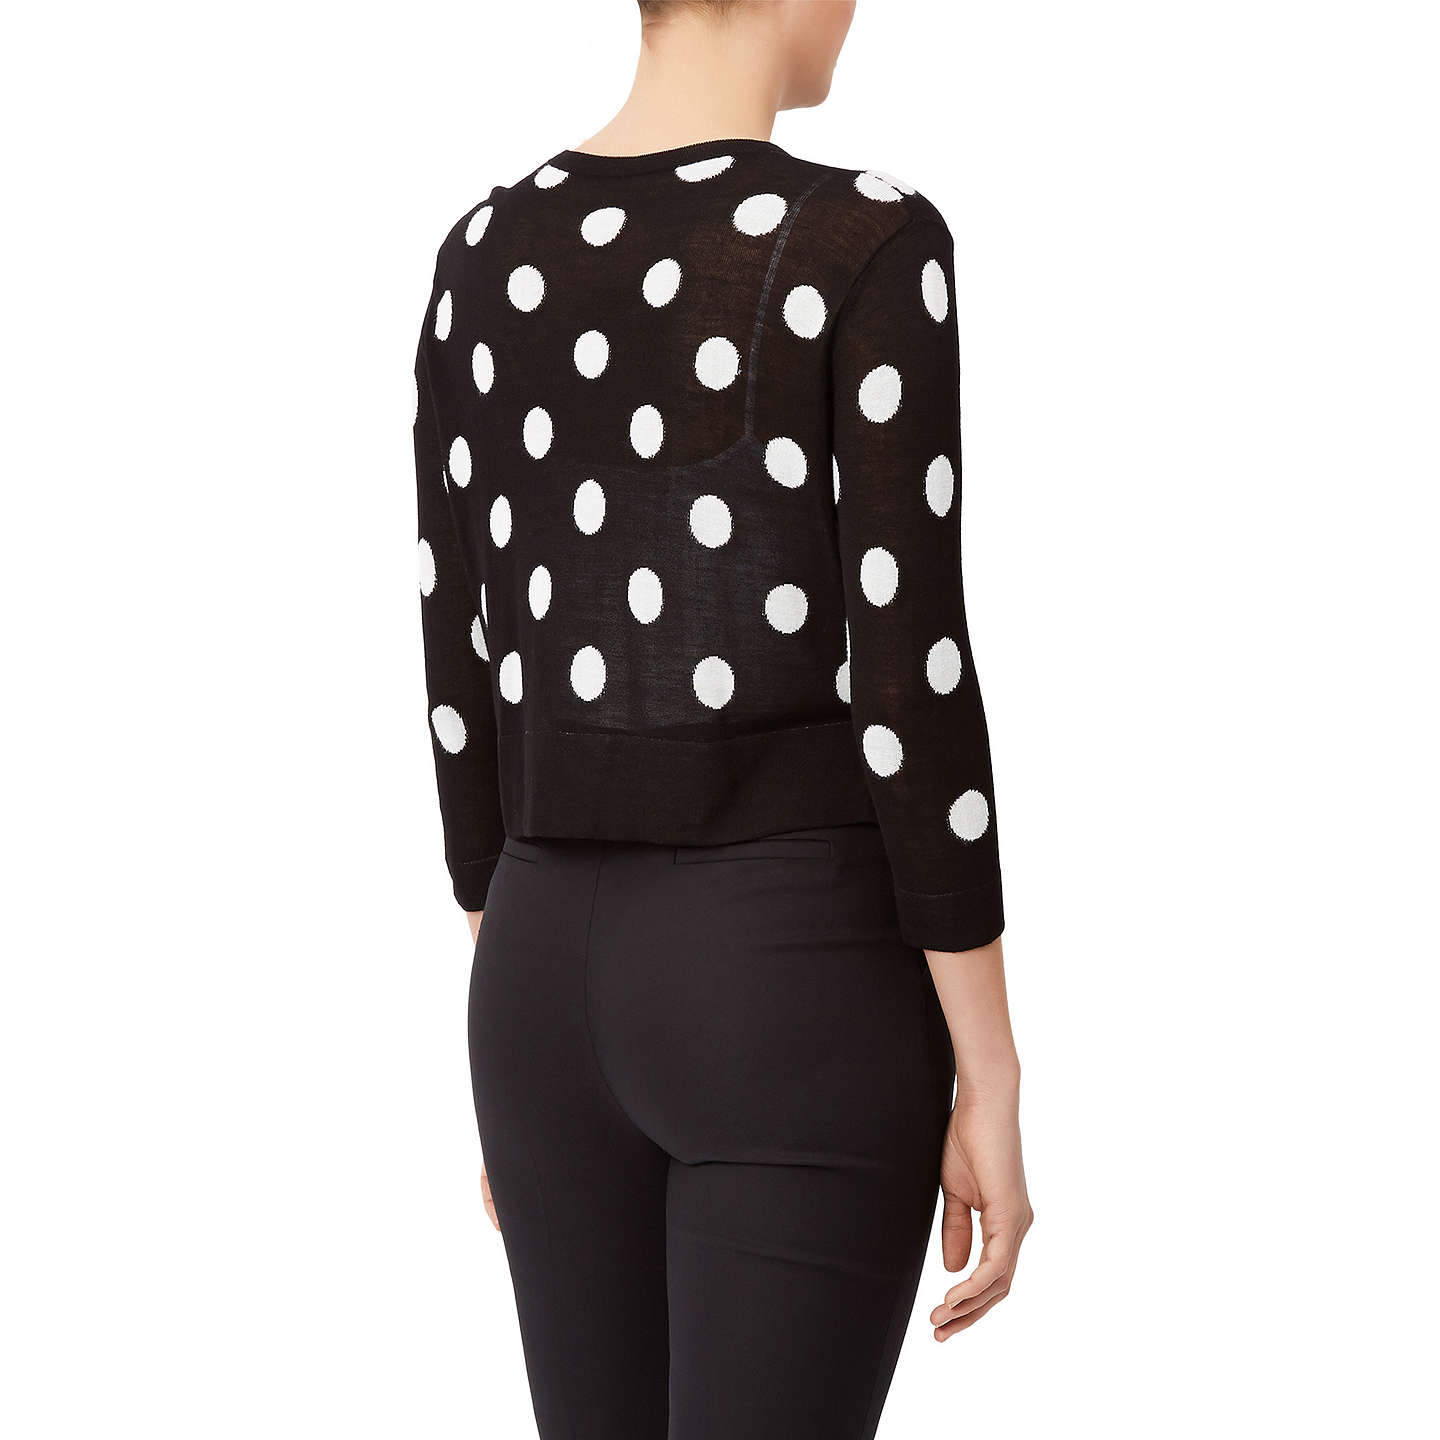 BuyDamsel in a dress Spotty Cardigan, Black, S Online at johnlewis.com